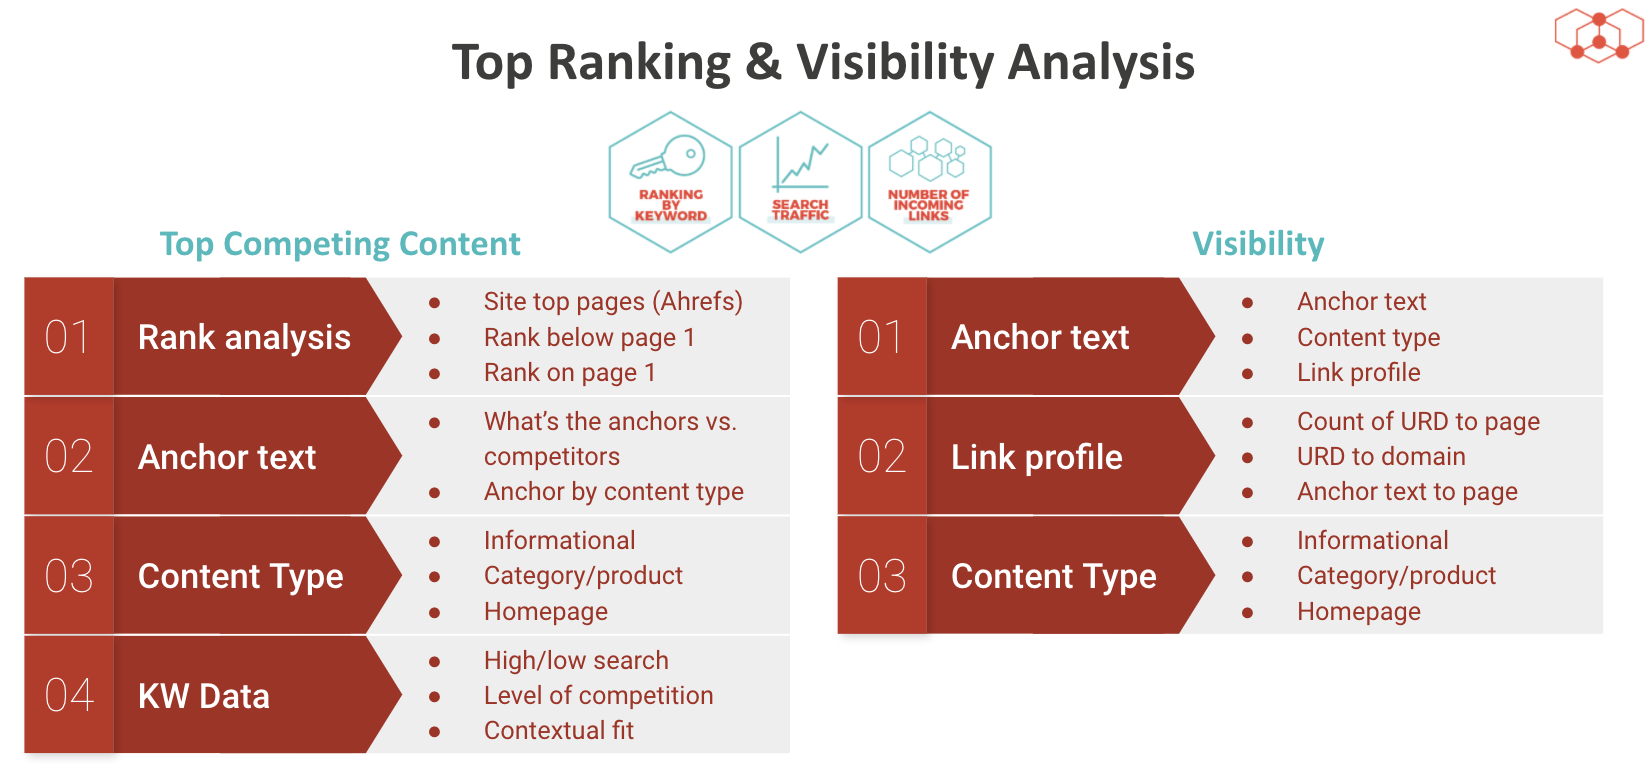 Top Ranking & VIsibility Analysis